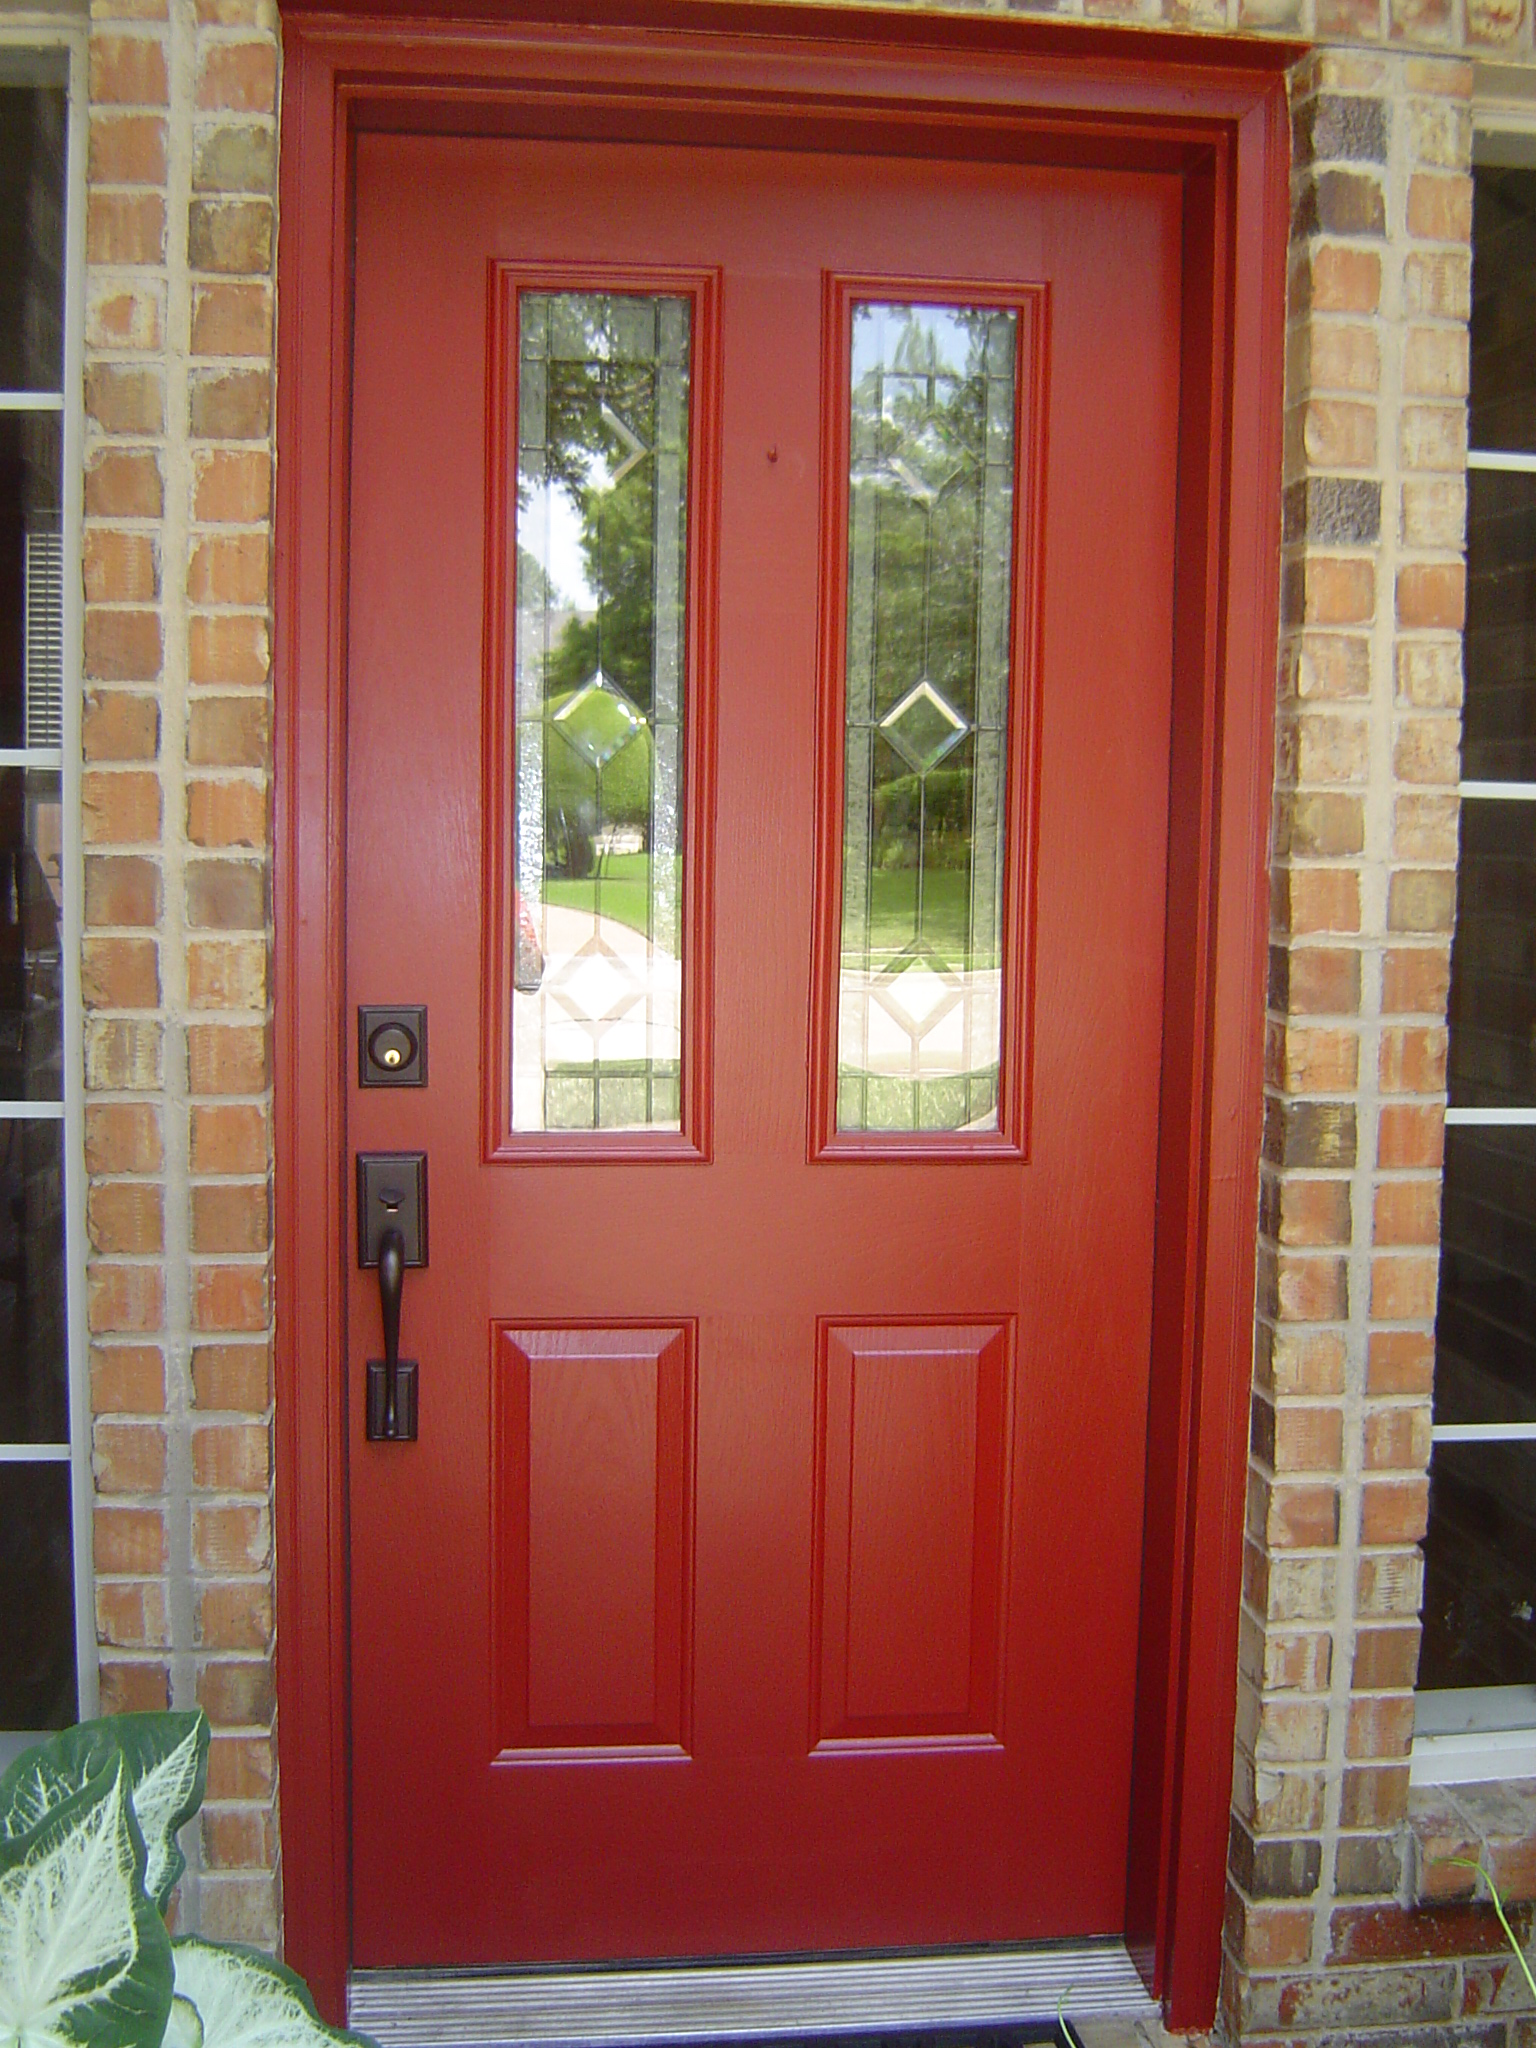 Home star staging blog home star staging Front door color ideas for brick house